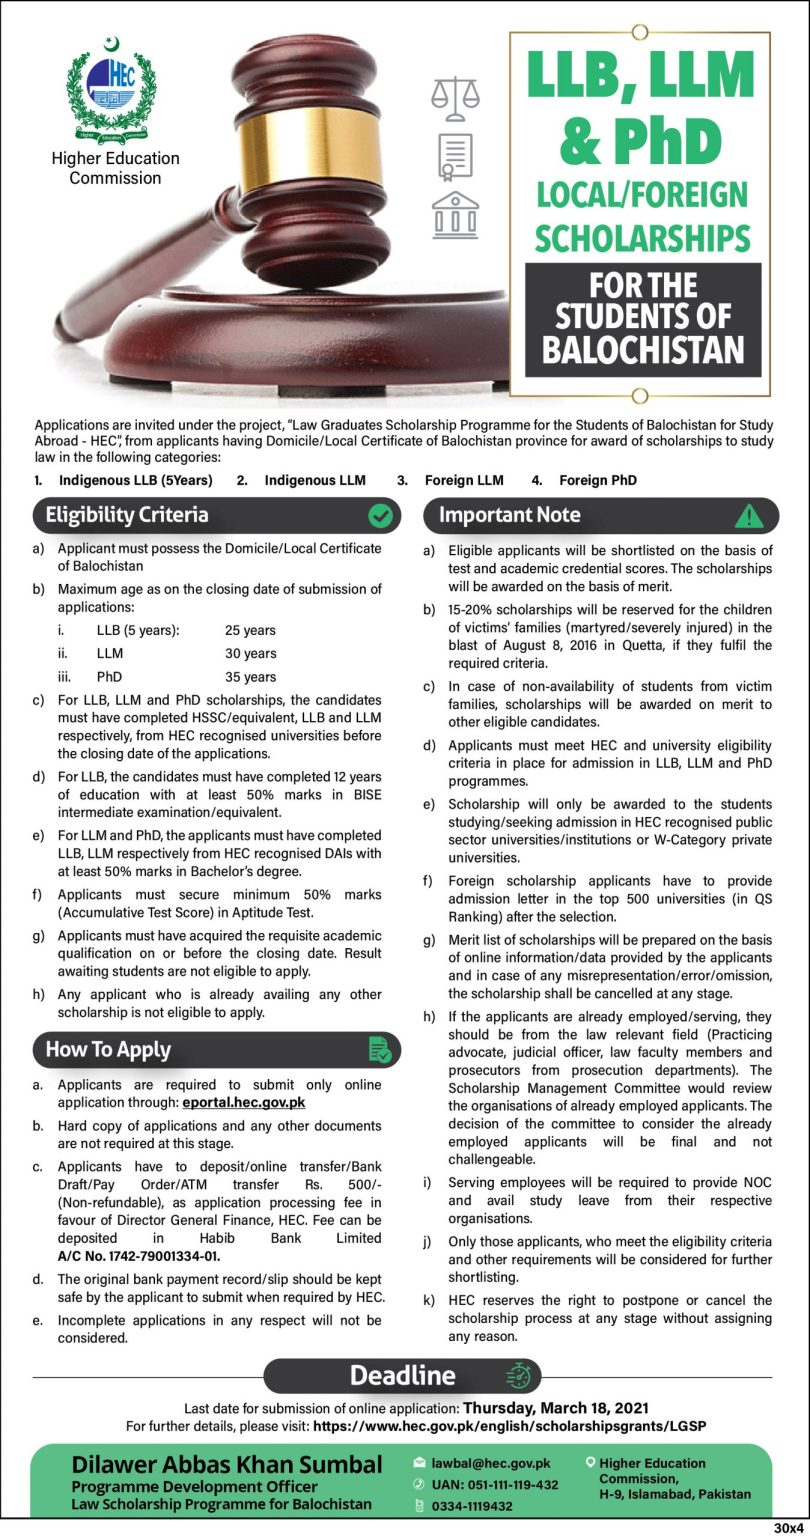 HEC Law Graduate Scholarship For Balochistan Students 2021-22